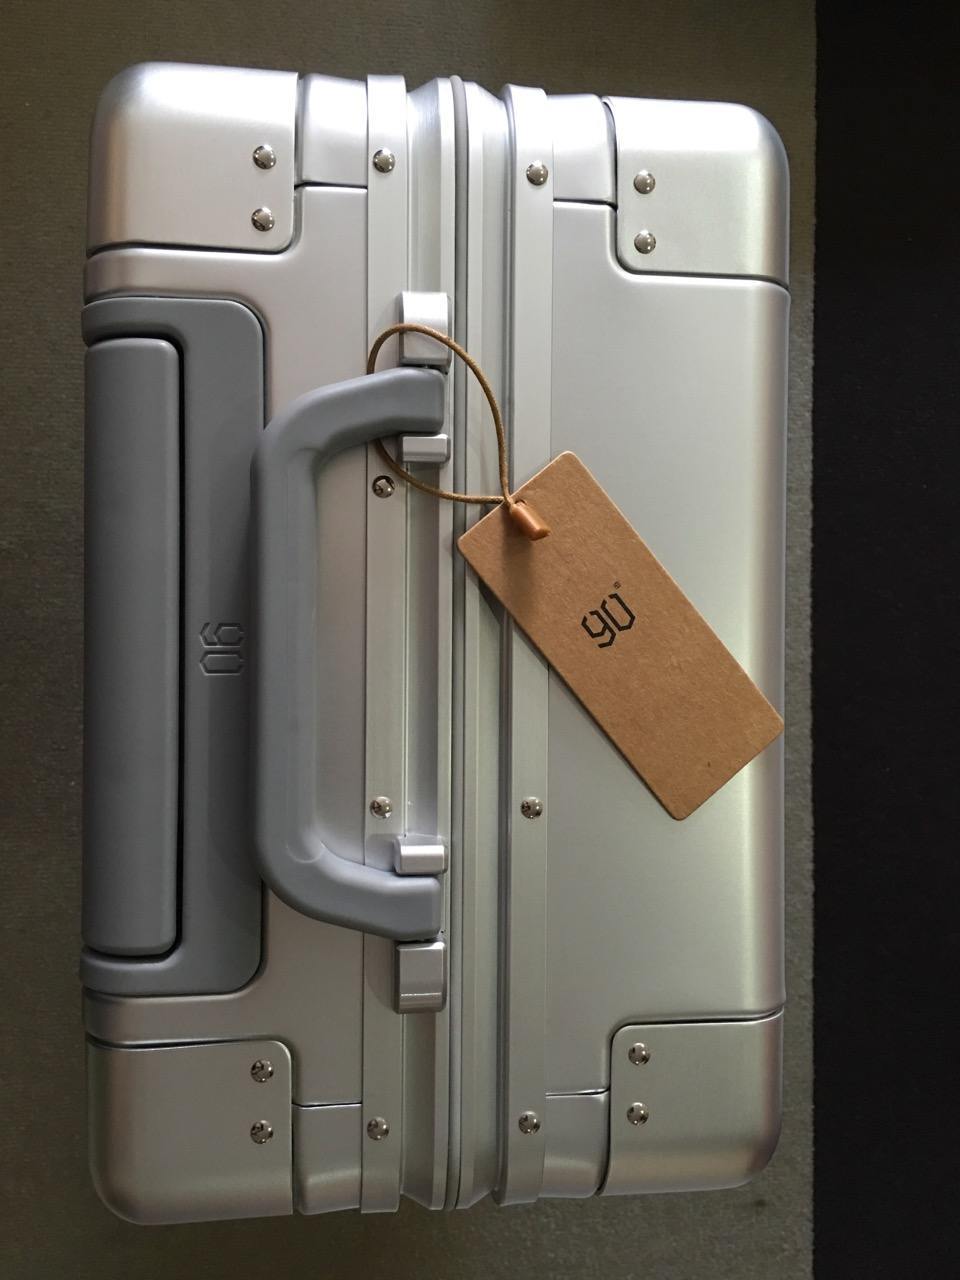 xiaomi-mi-90-smart-metal-luggage-suitcase-top-view